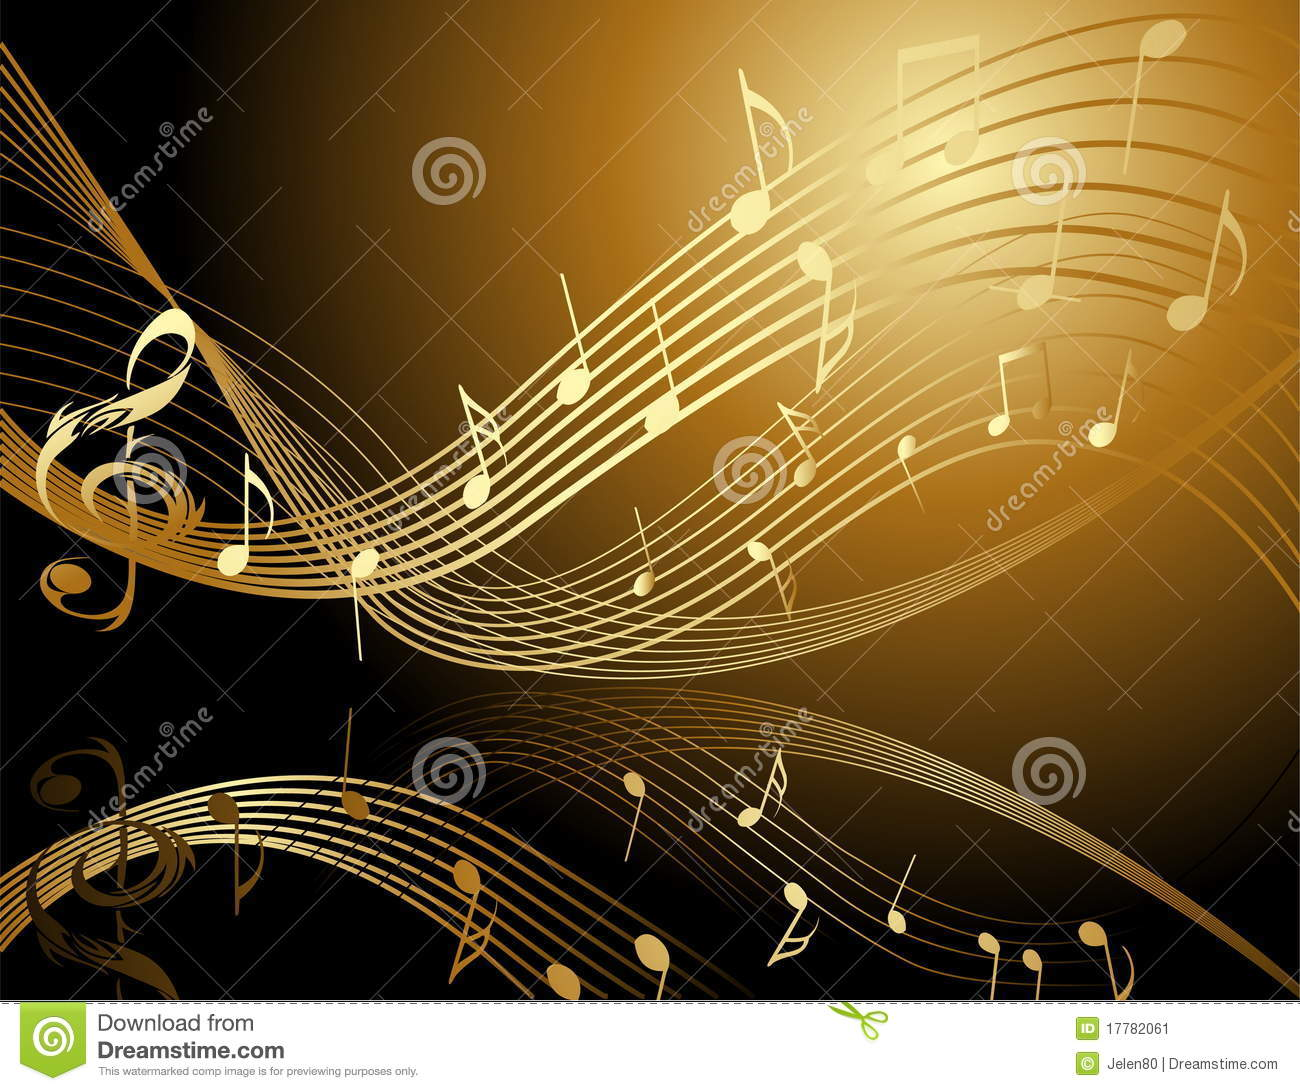 Background With Music Notes Stock Vector  Illustration of